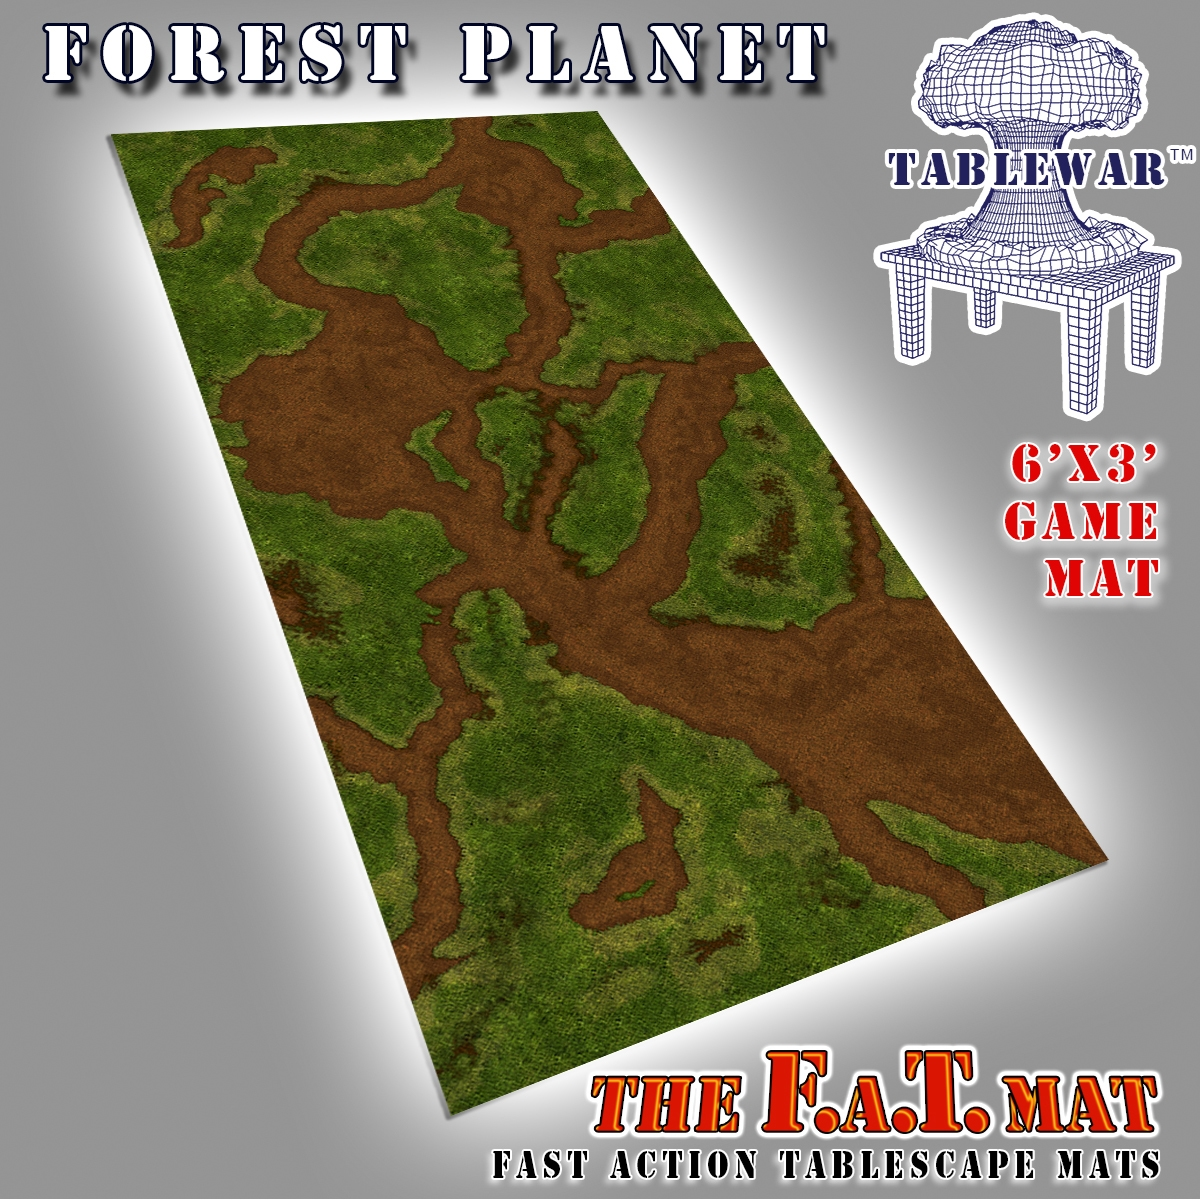 F.A.T. Mats: Forest Planet 6×3